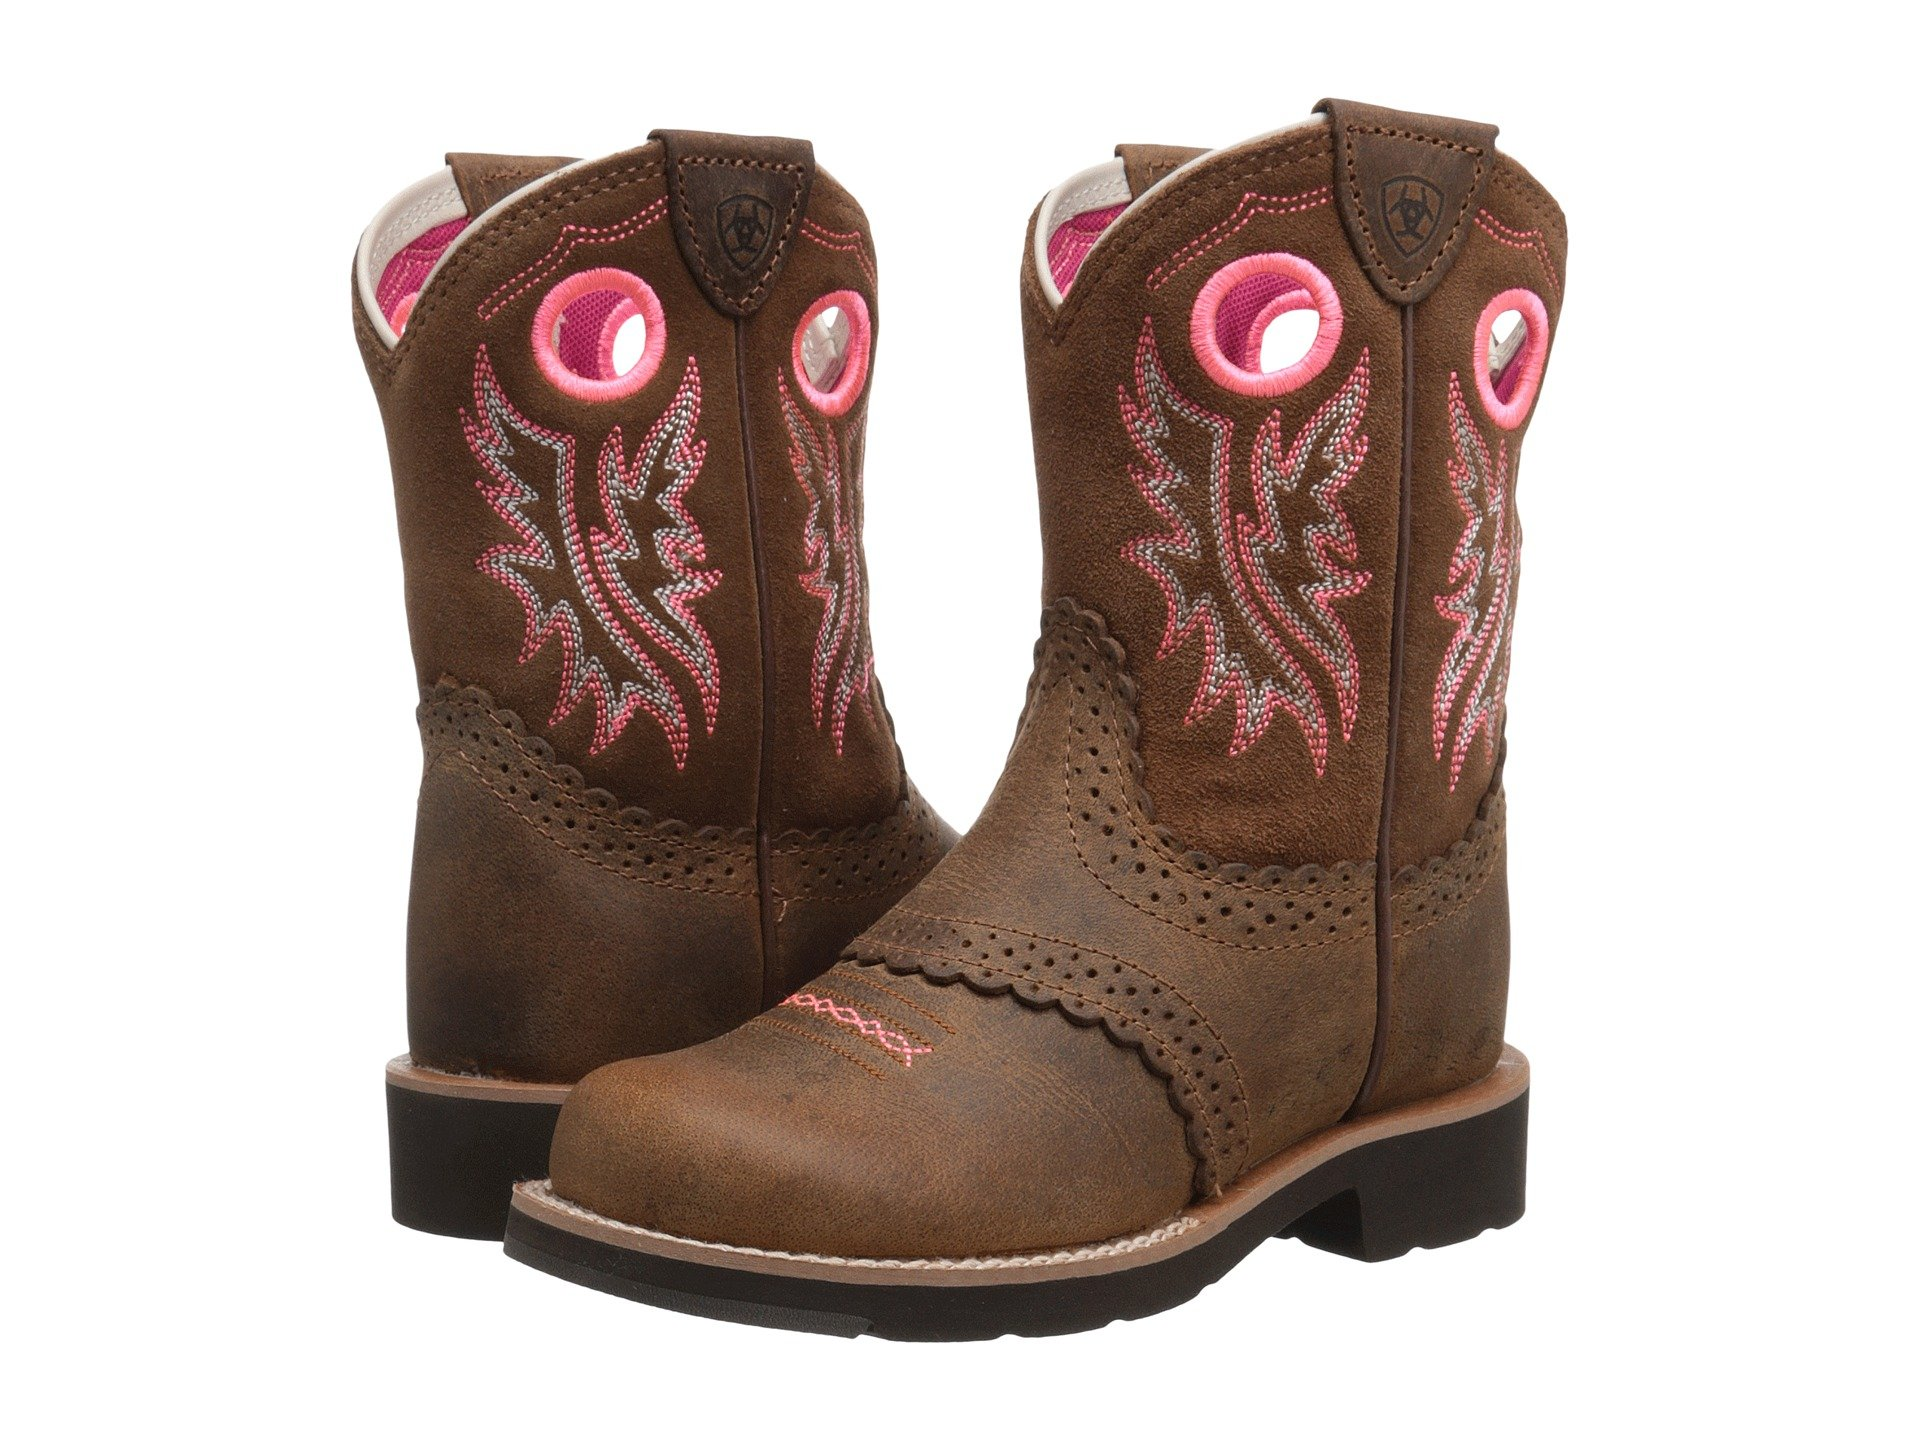 463a45732d4 Girls Ariat Kids Boots + FREE SHIPPING | Shoes | Zappos.com